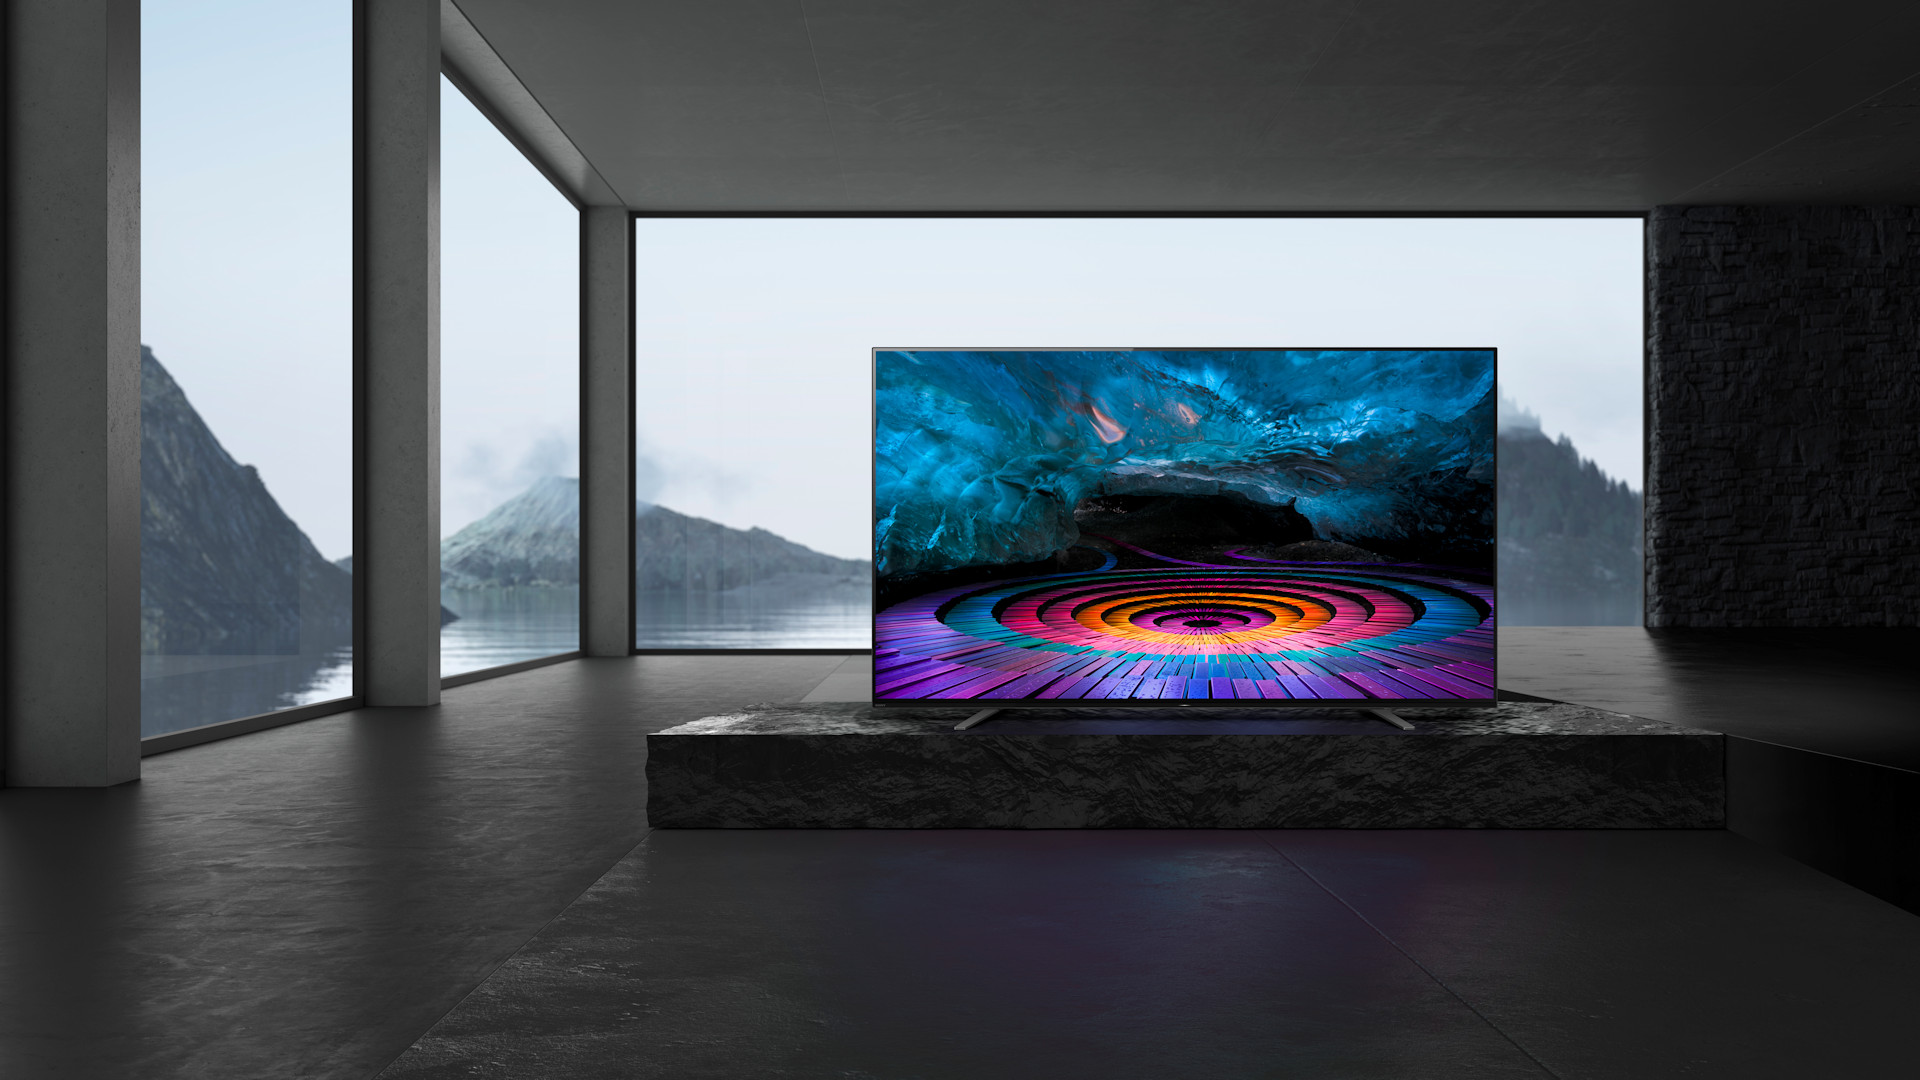 Sony A8H/A8 OLED: best all-around TV